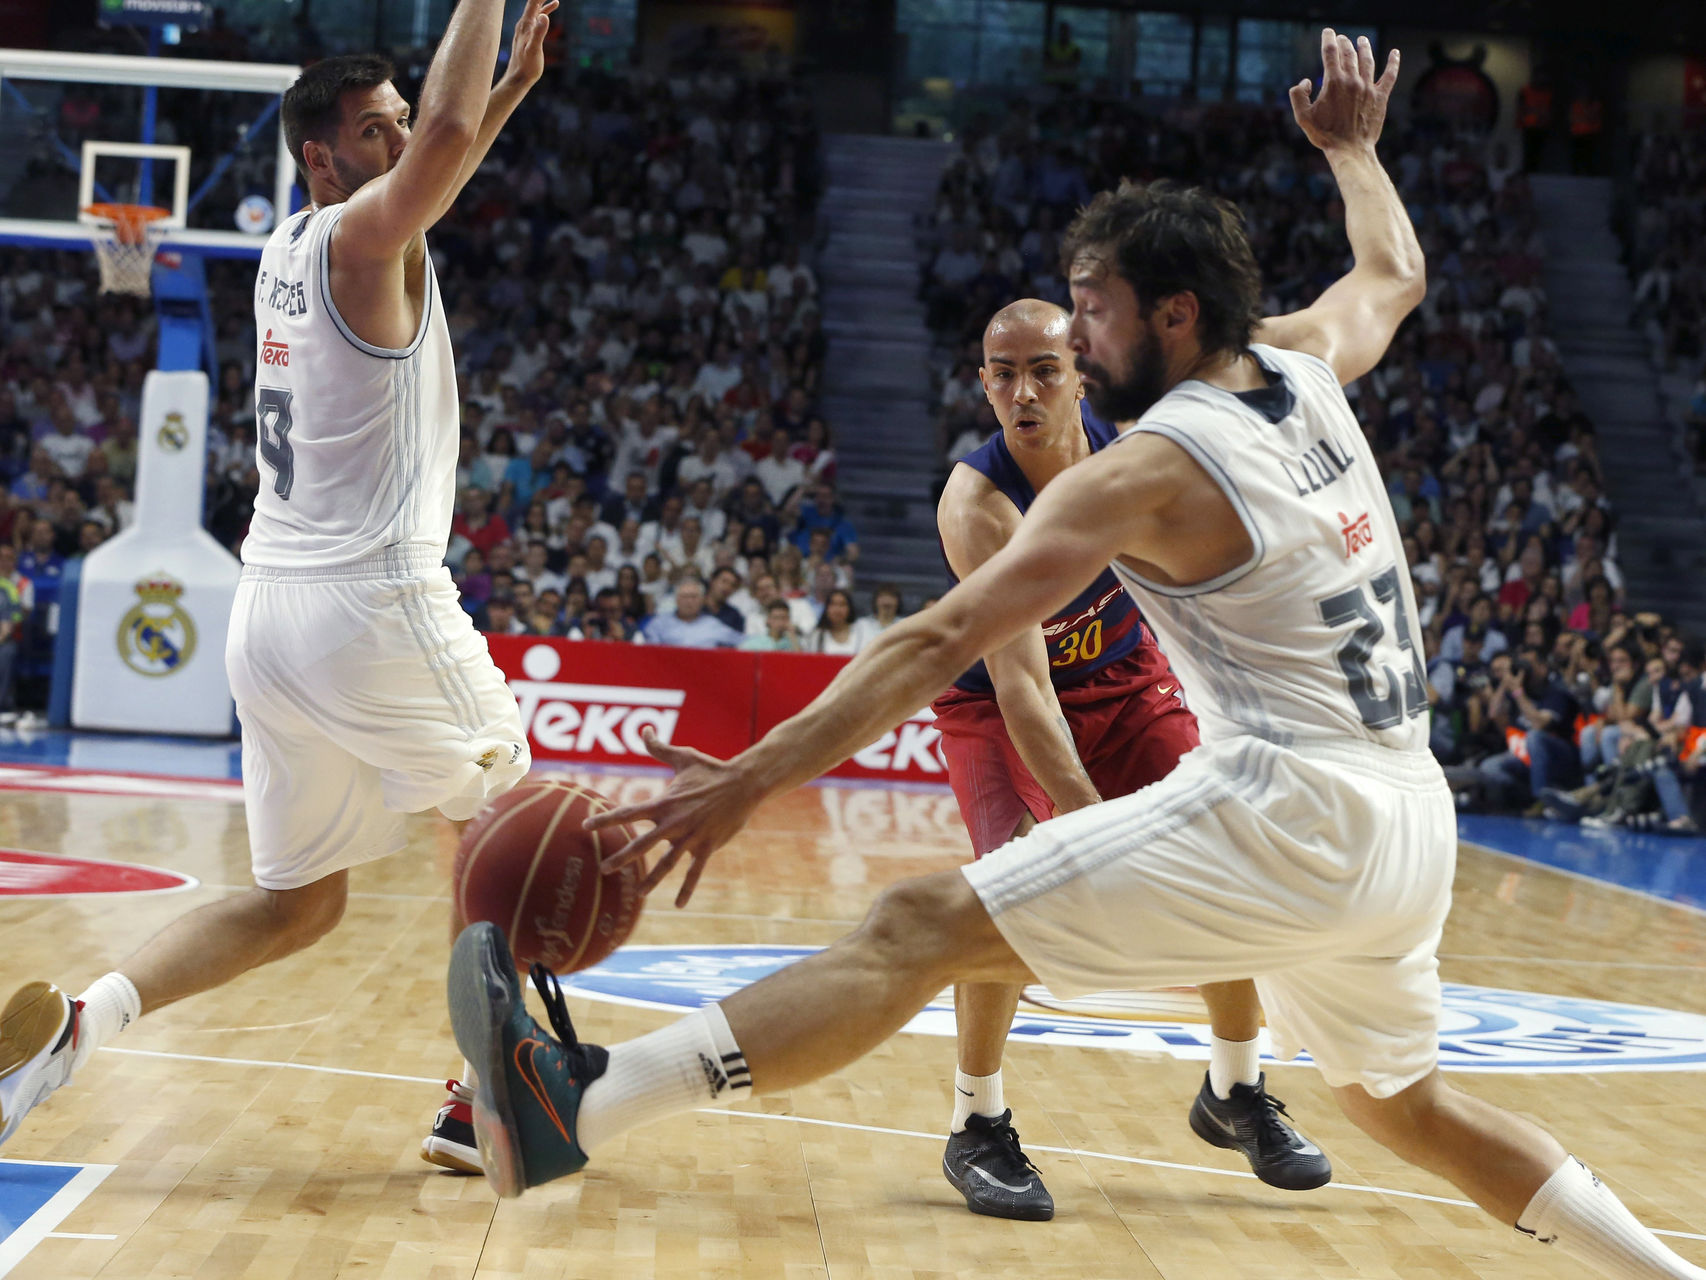 Reyes y Llull intentan impedir un pase de Arroyo.